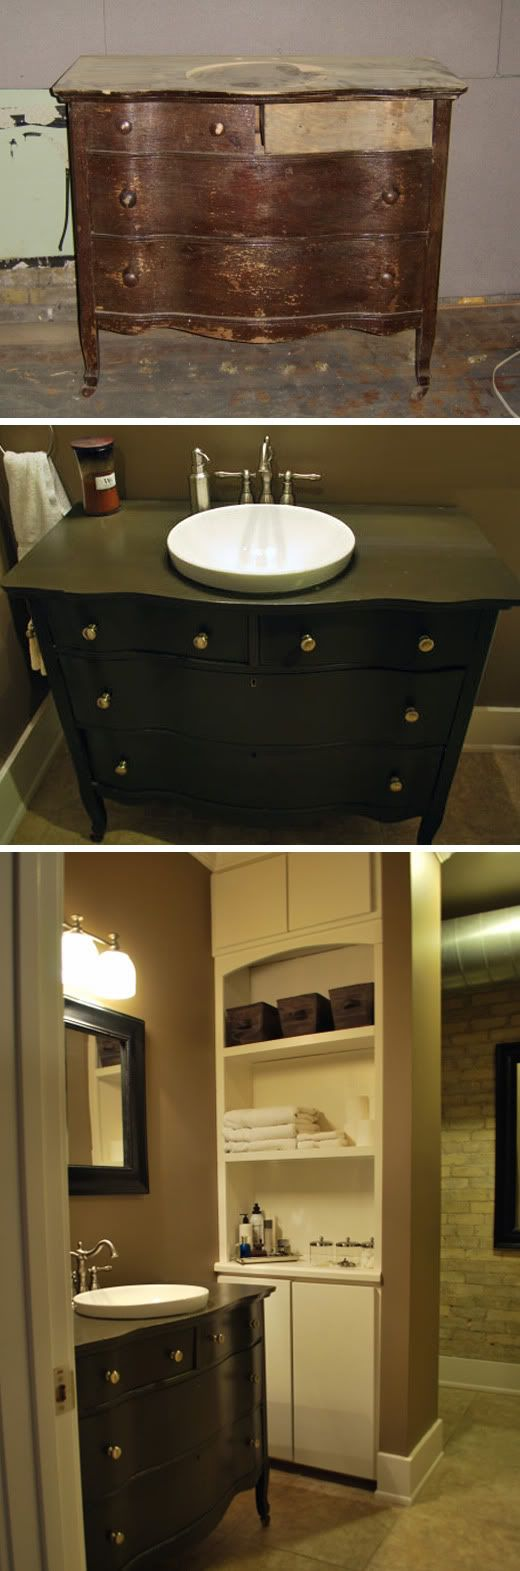 Traditionally Modern Designs: Dresser into Vanity and Attic Remodel: